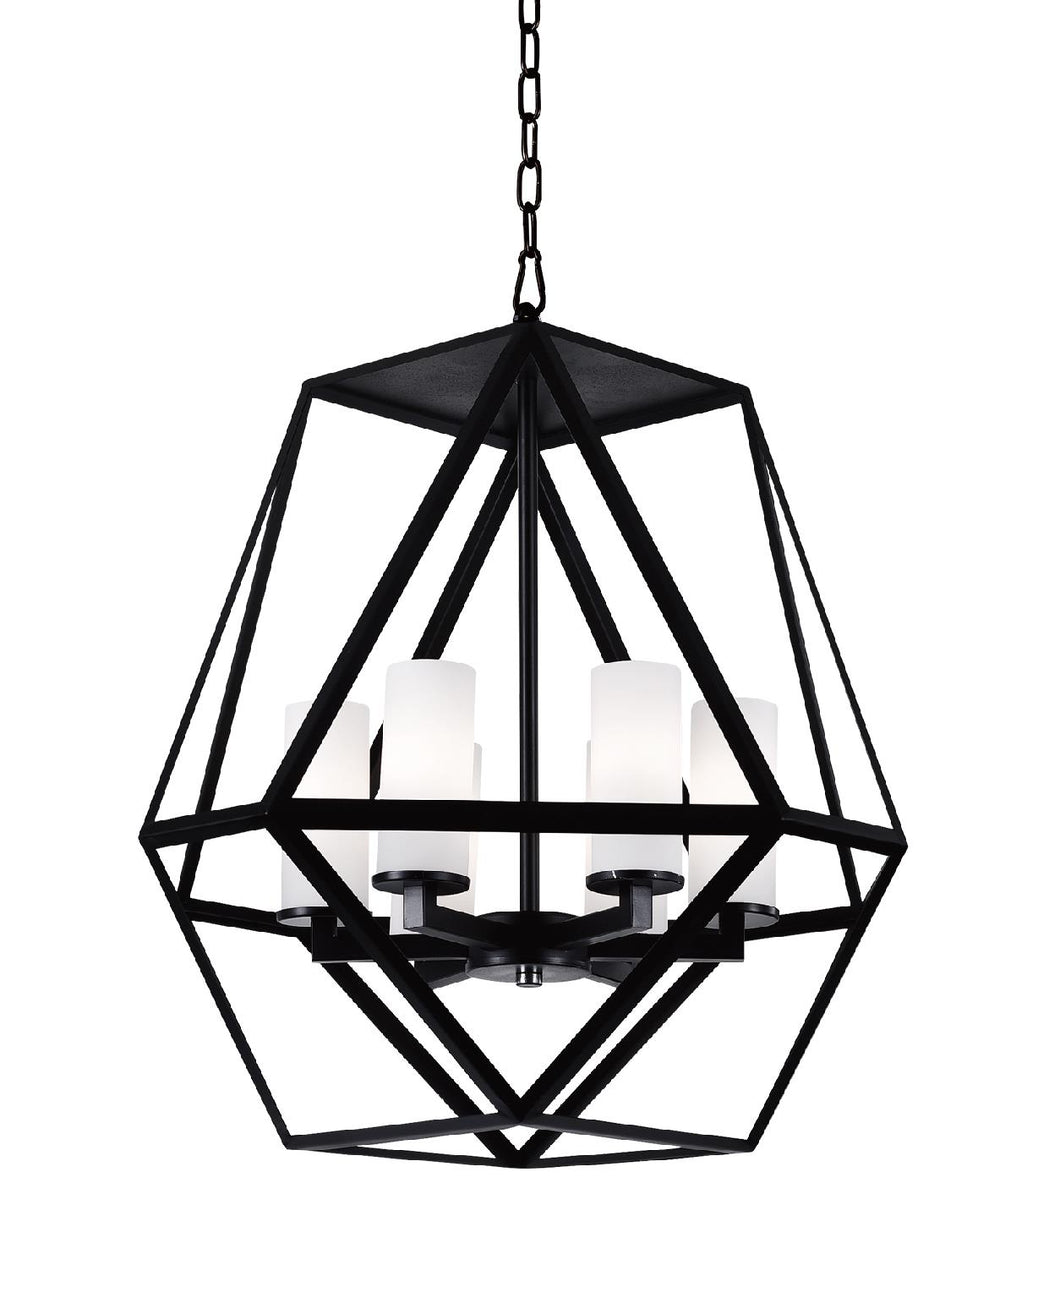 6 Light Candle Chandelier with Black finish